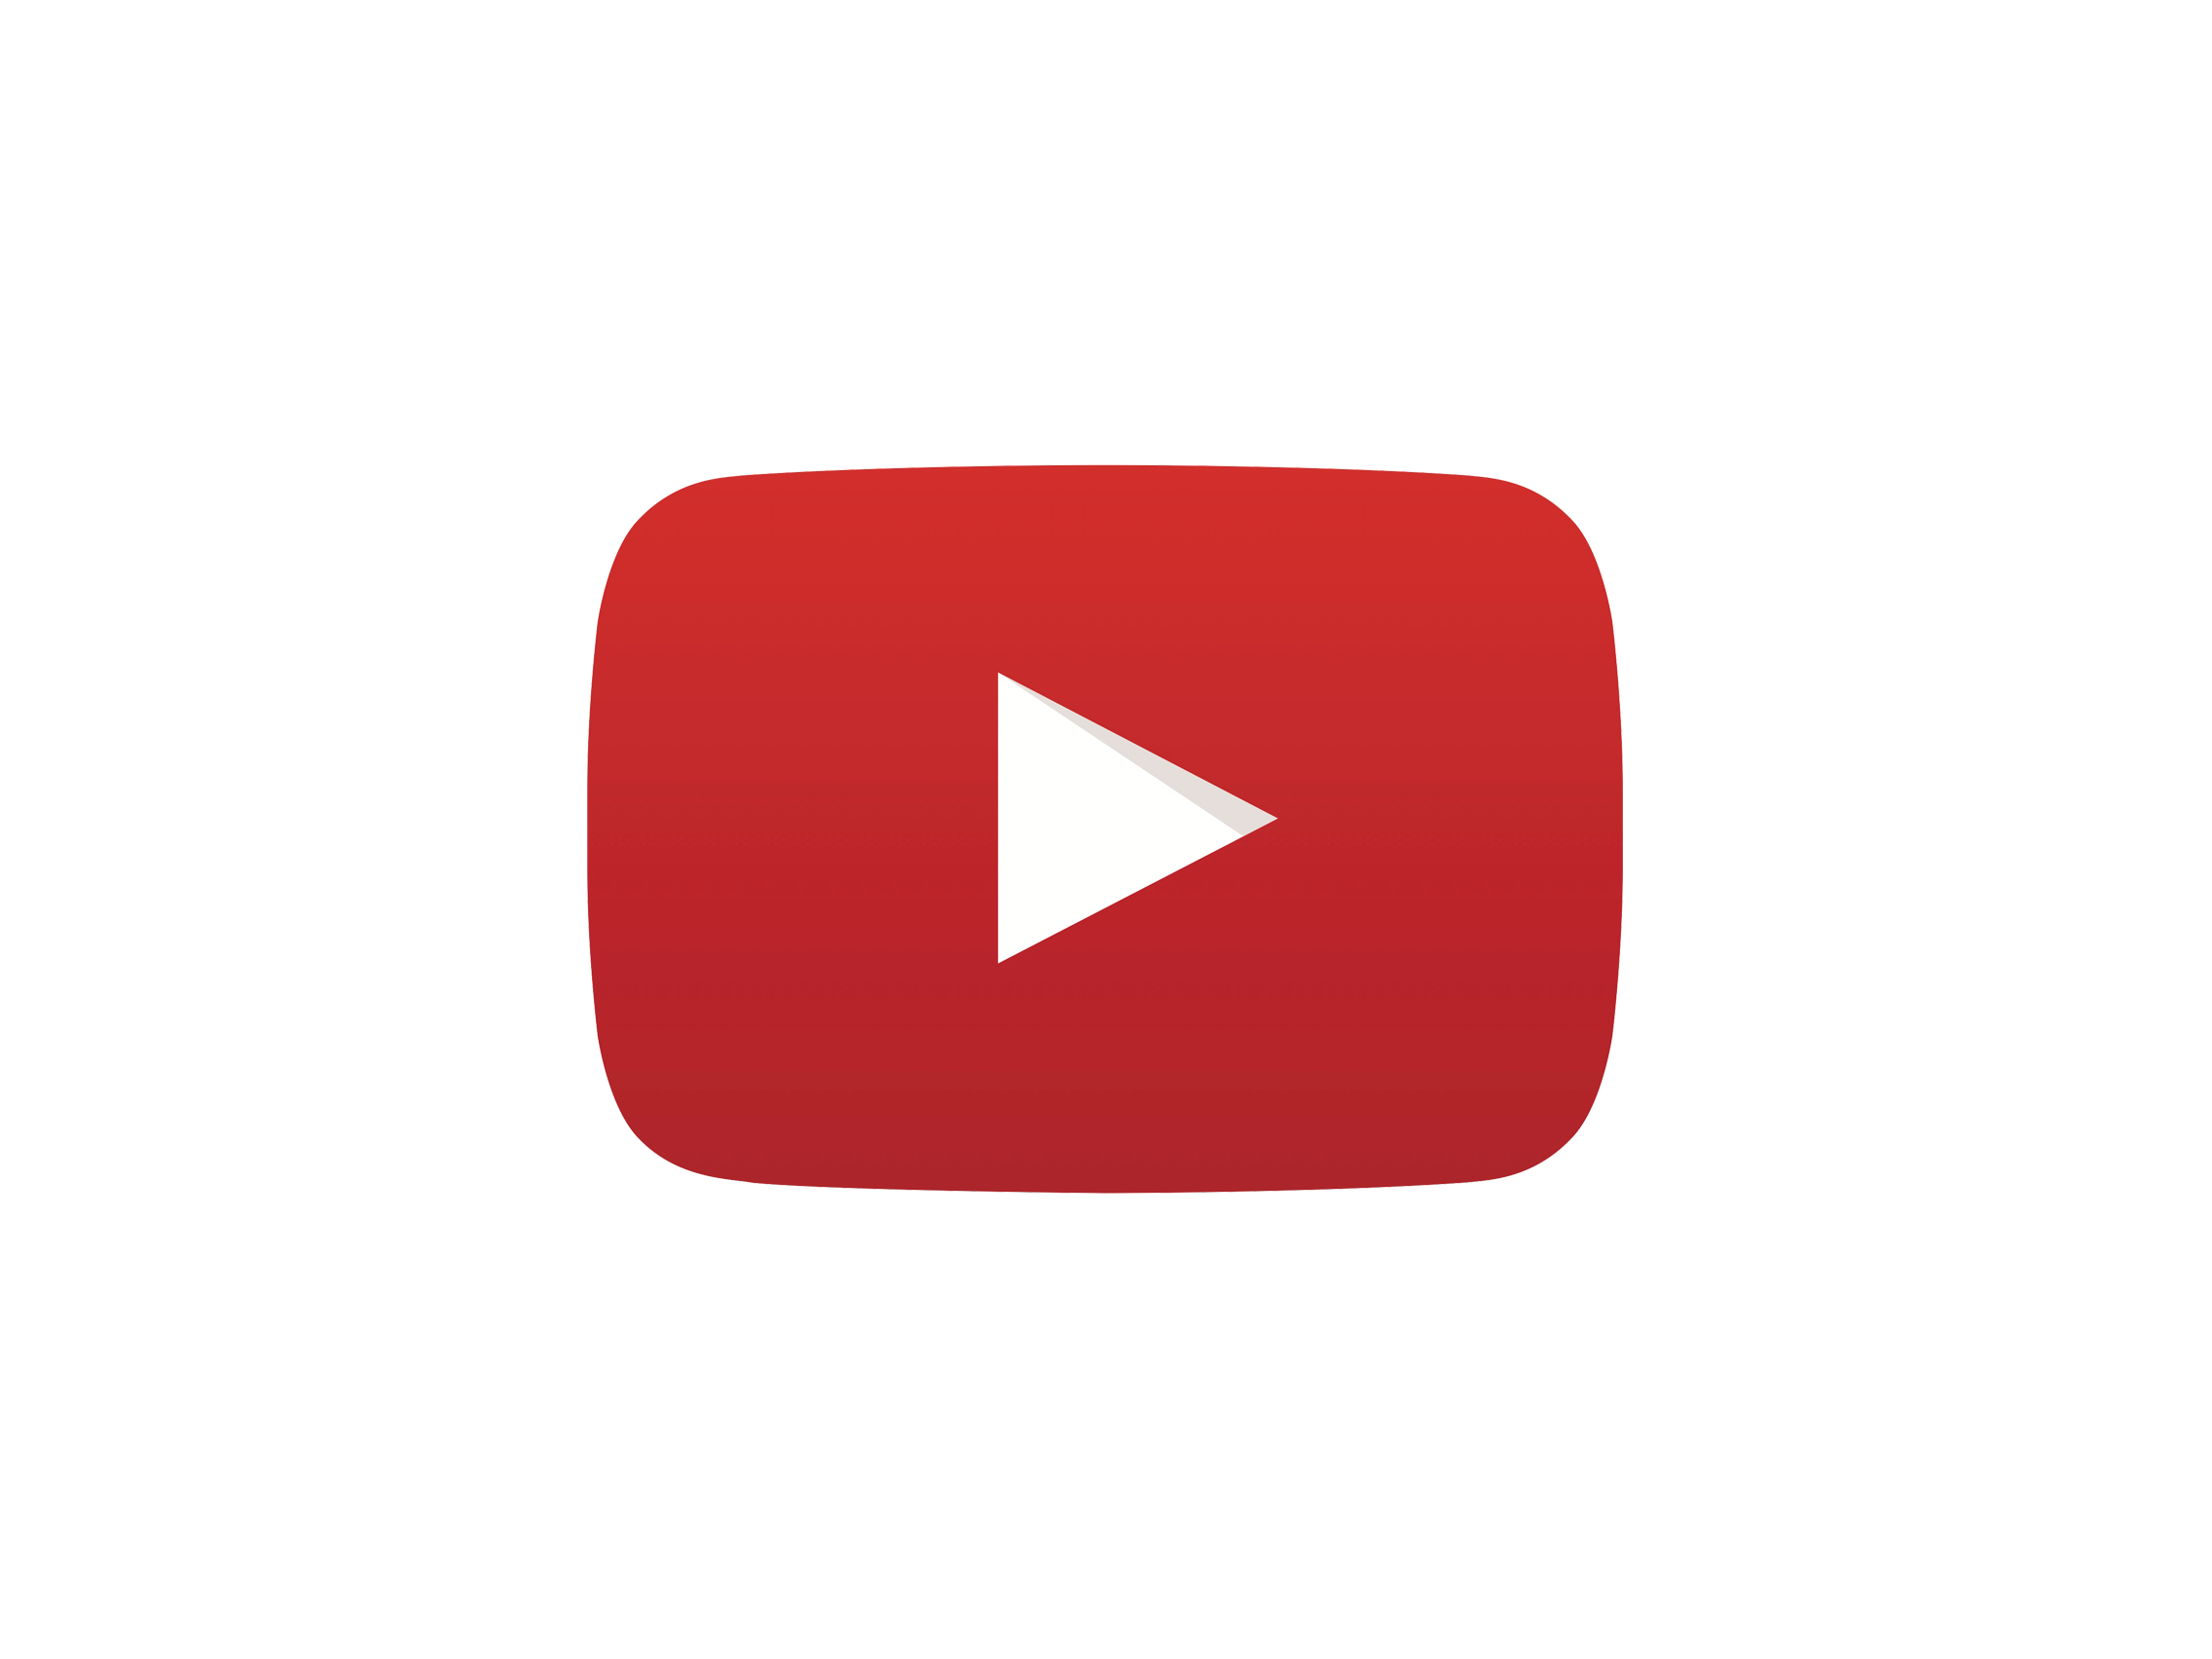 http://logok.org/wp-content/uploads/2014/08/YouTube-logo-play-icon.png